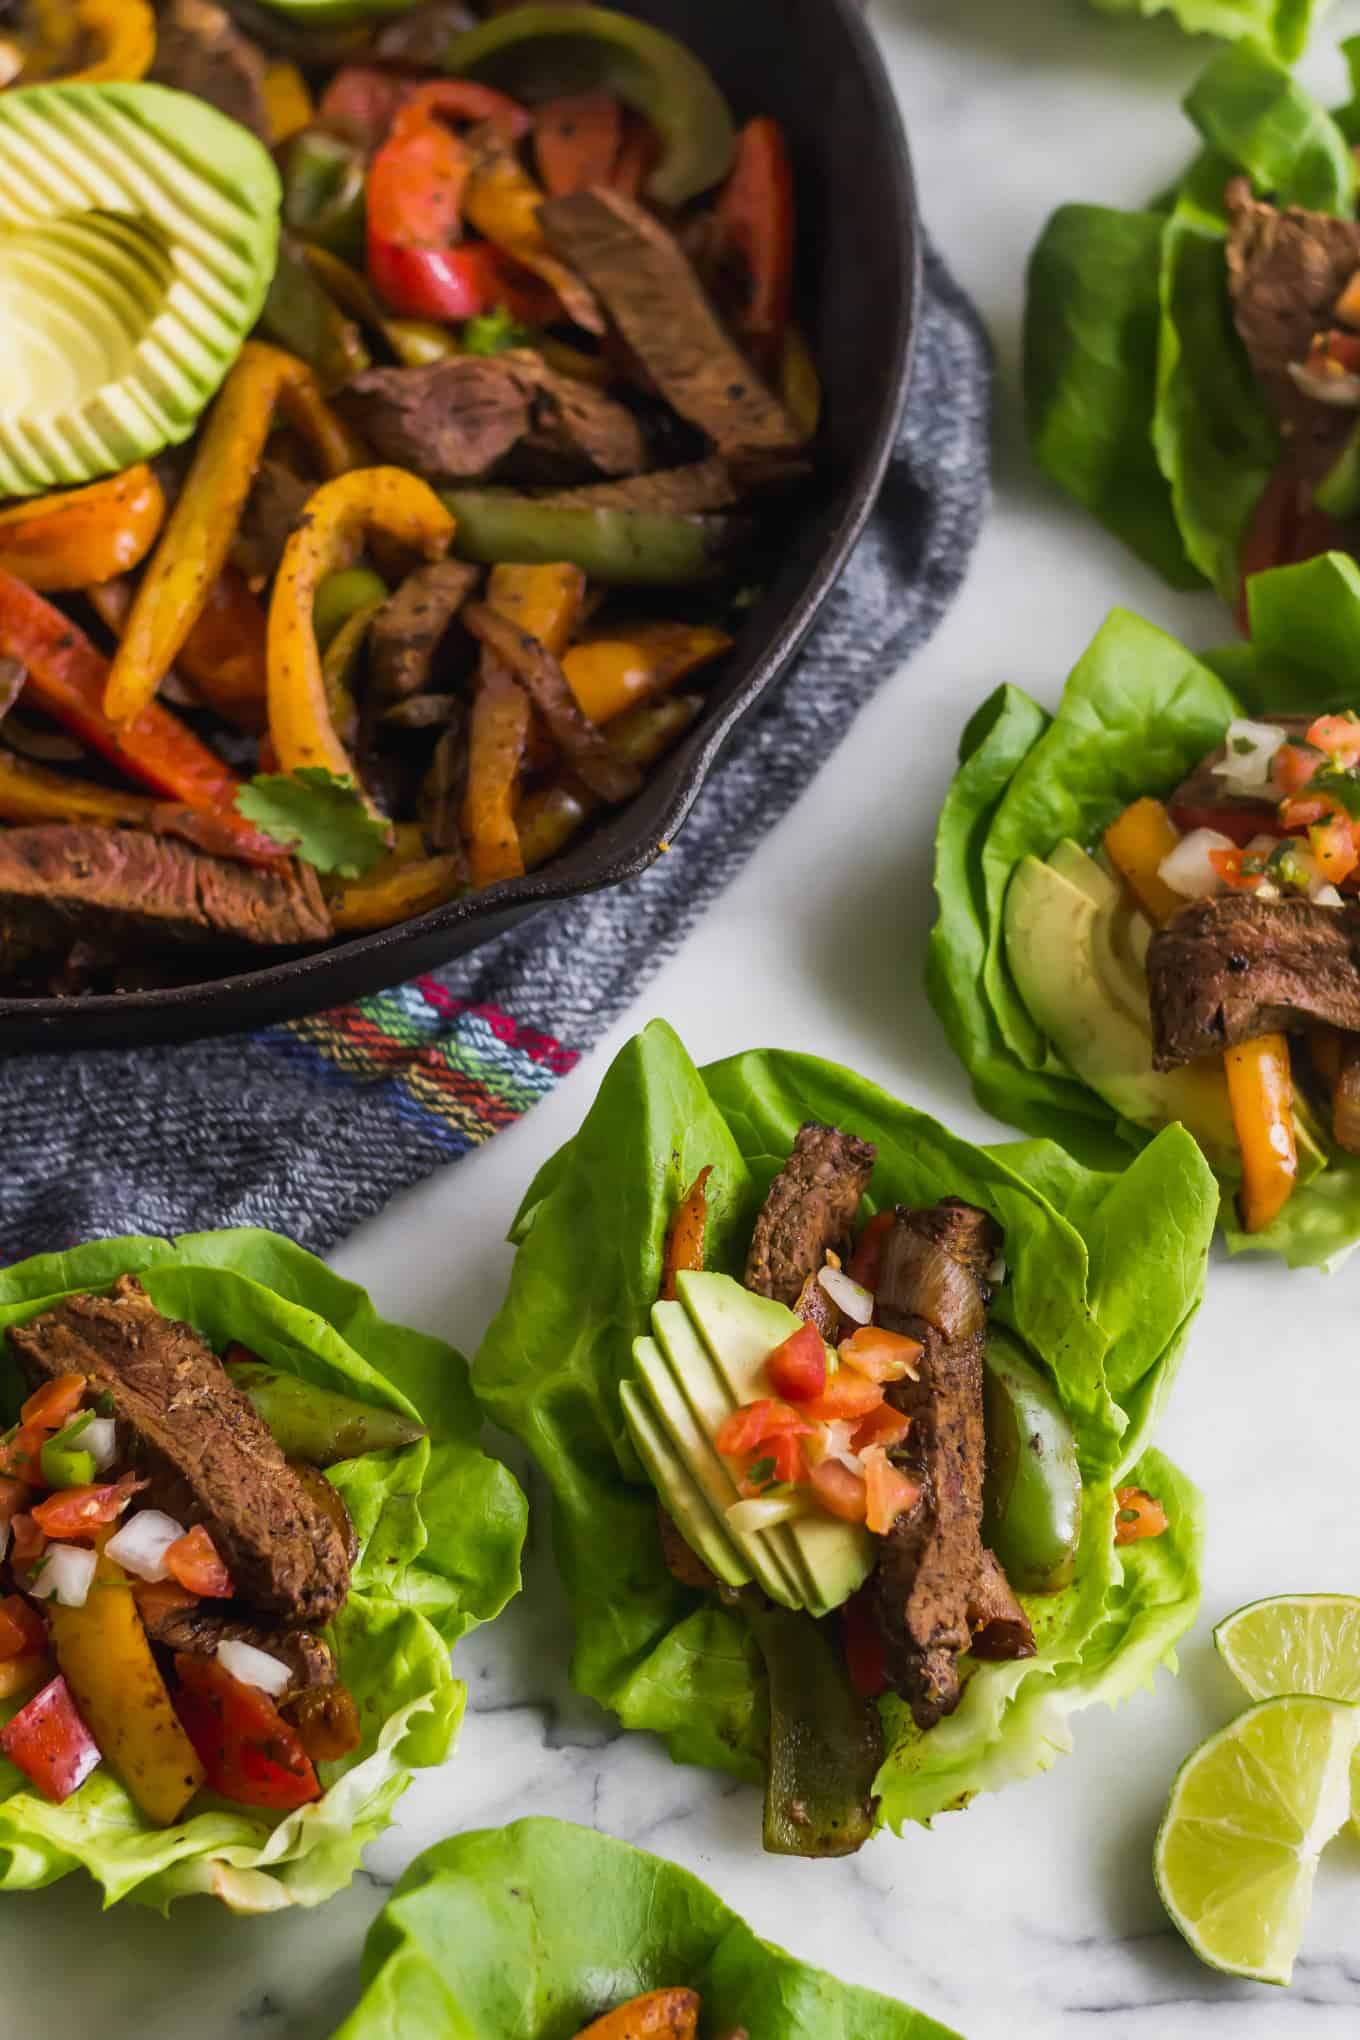 Cast iron pan filled with steak fajitas and avocado surrounded by steak fajita lettuce wraps